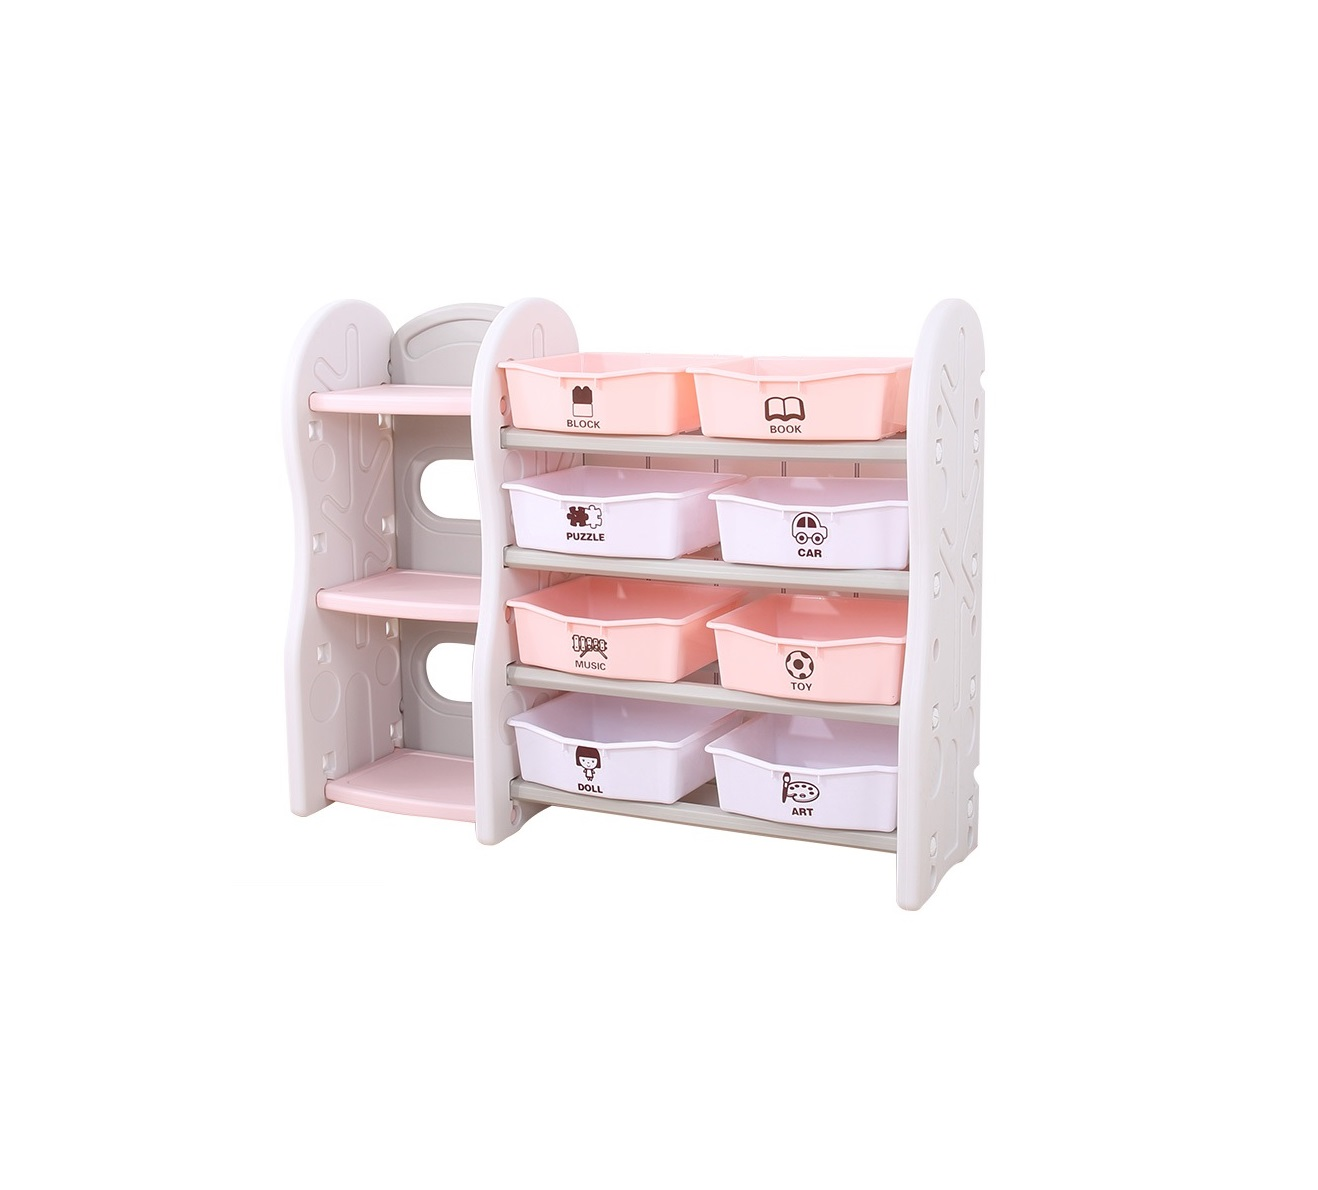 storage shelf stand rack organizer shelf toy basket